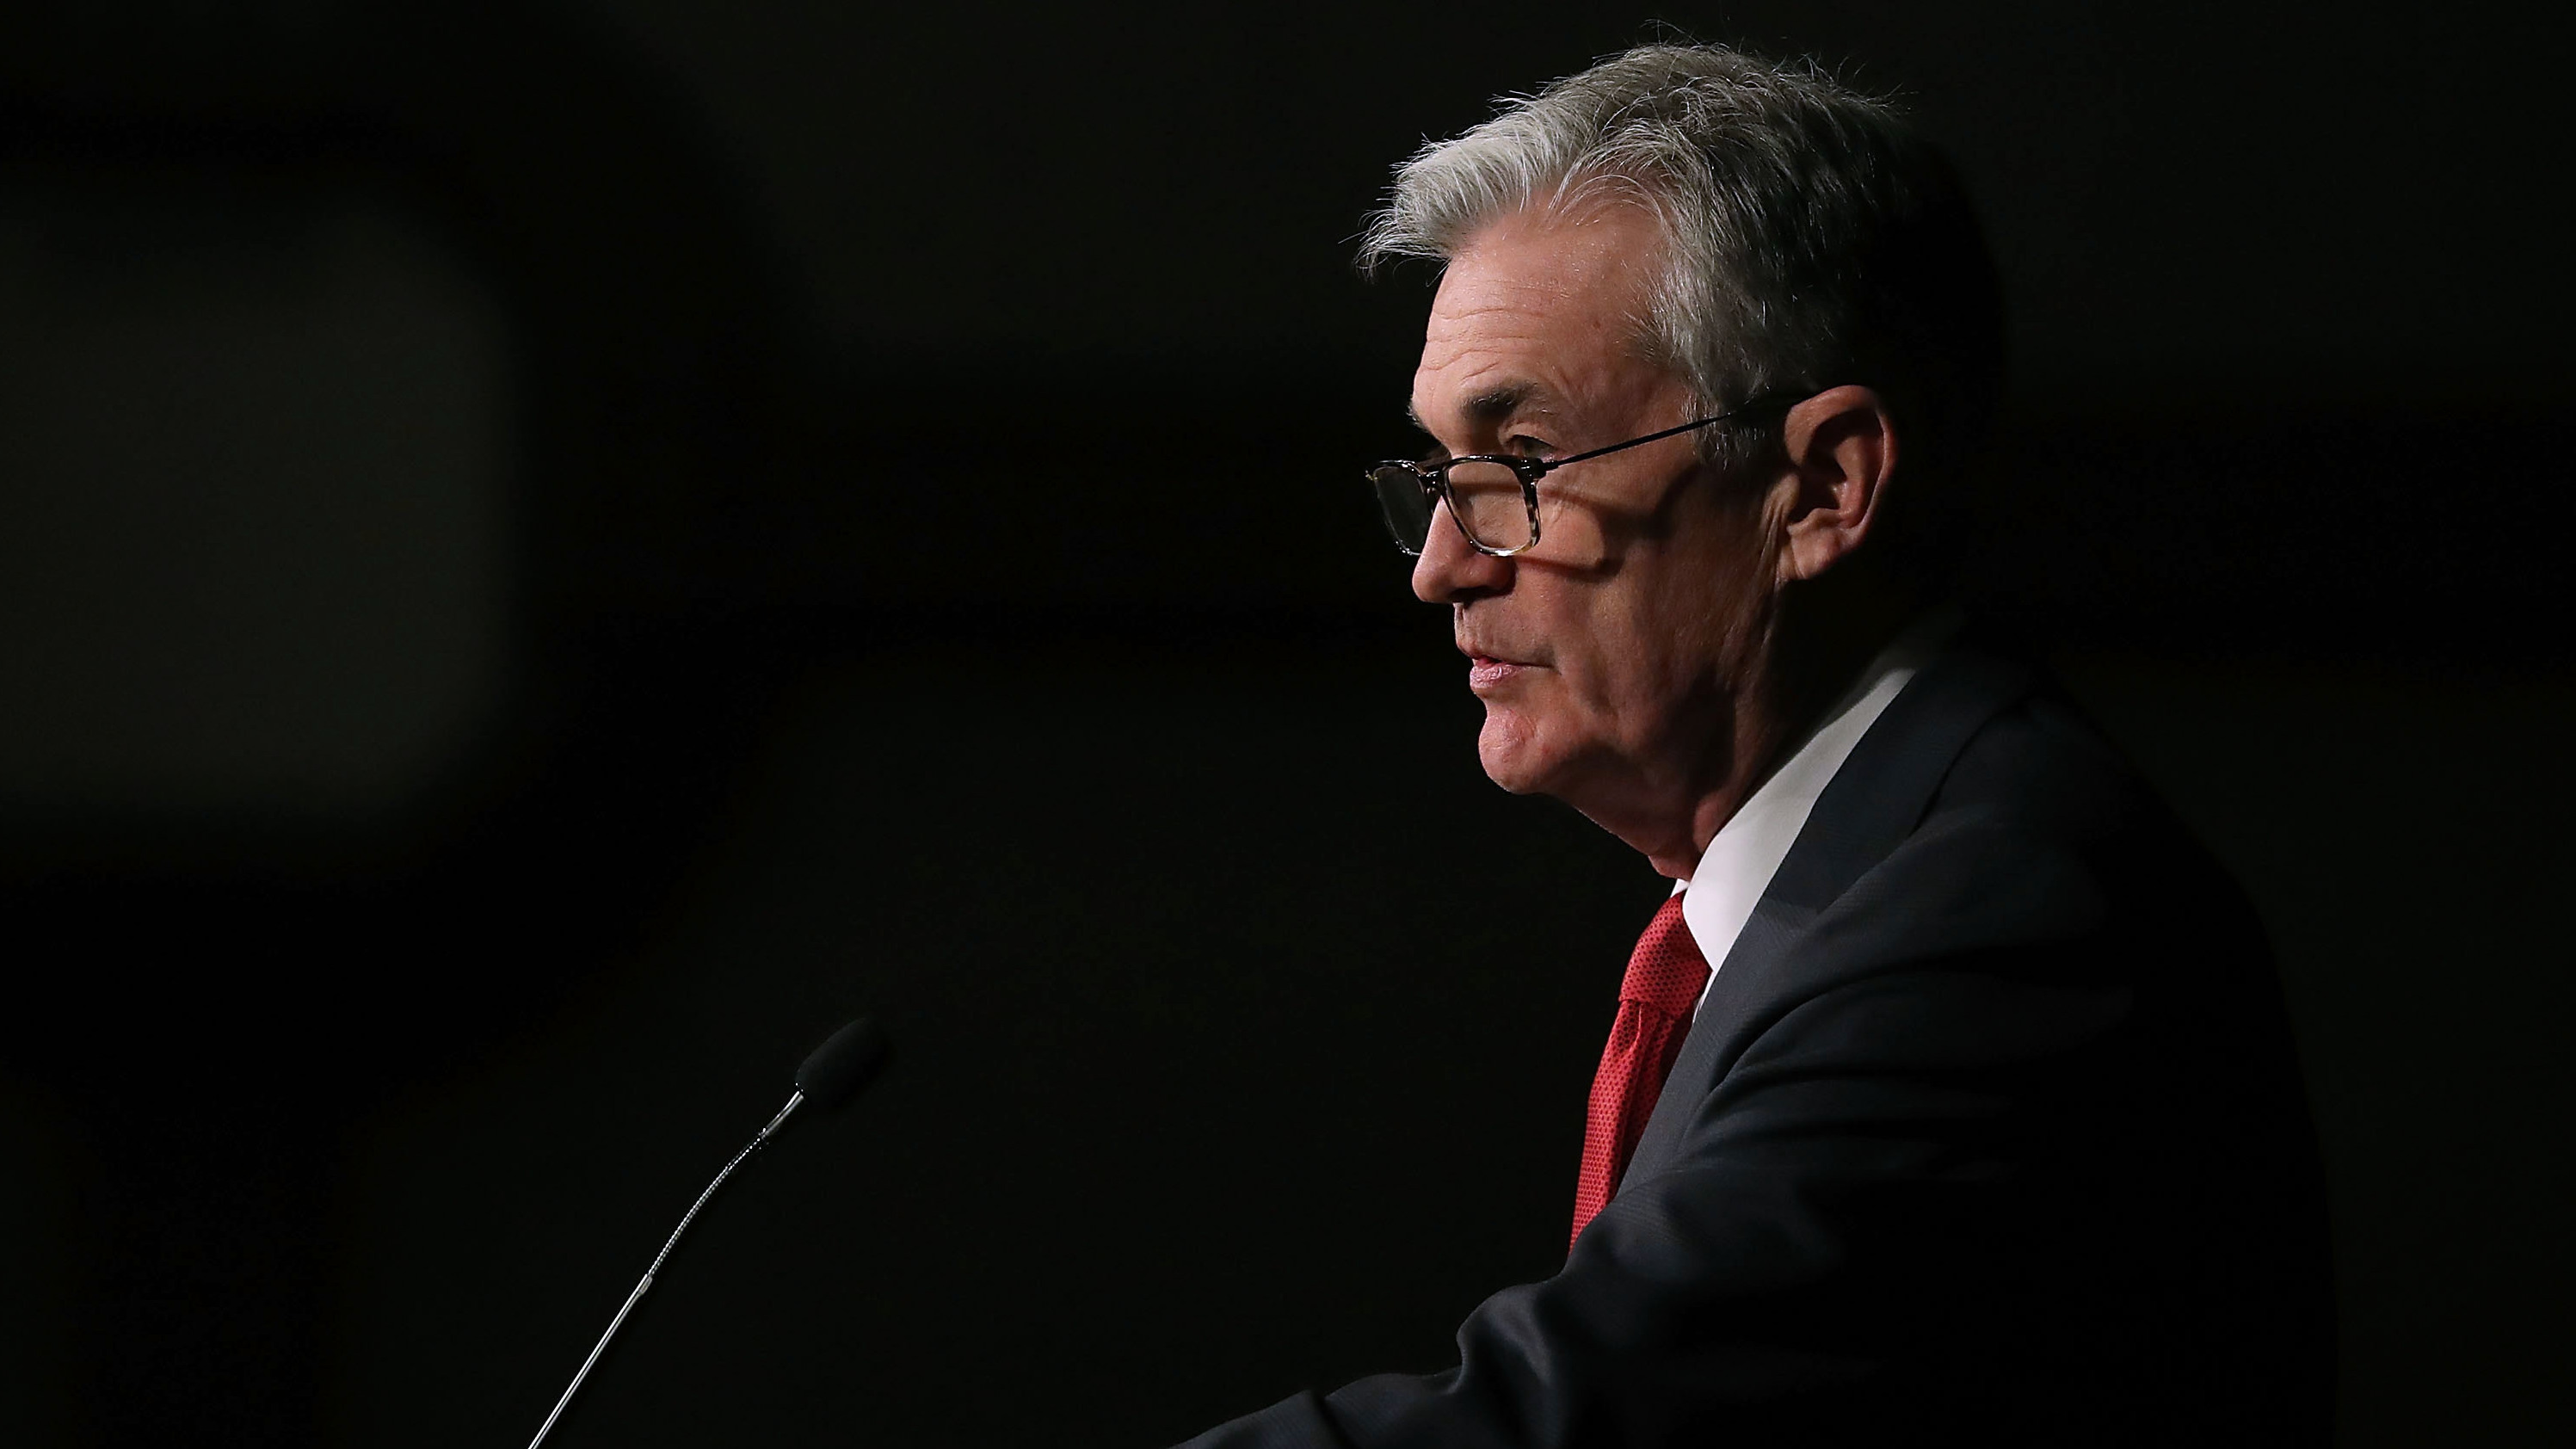 NY Federal Reserve president claims Central Bank may rethink monetary policy